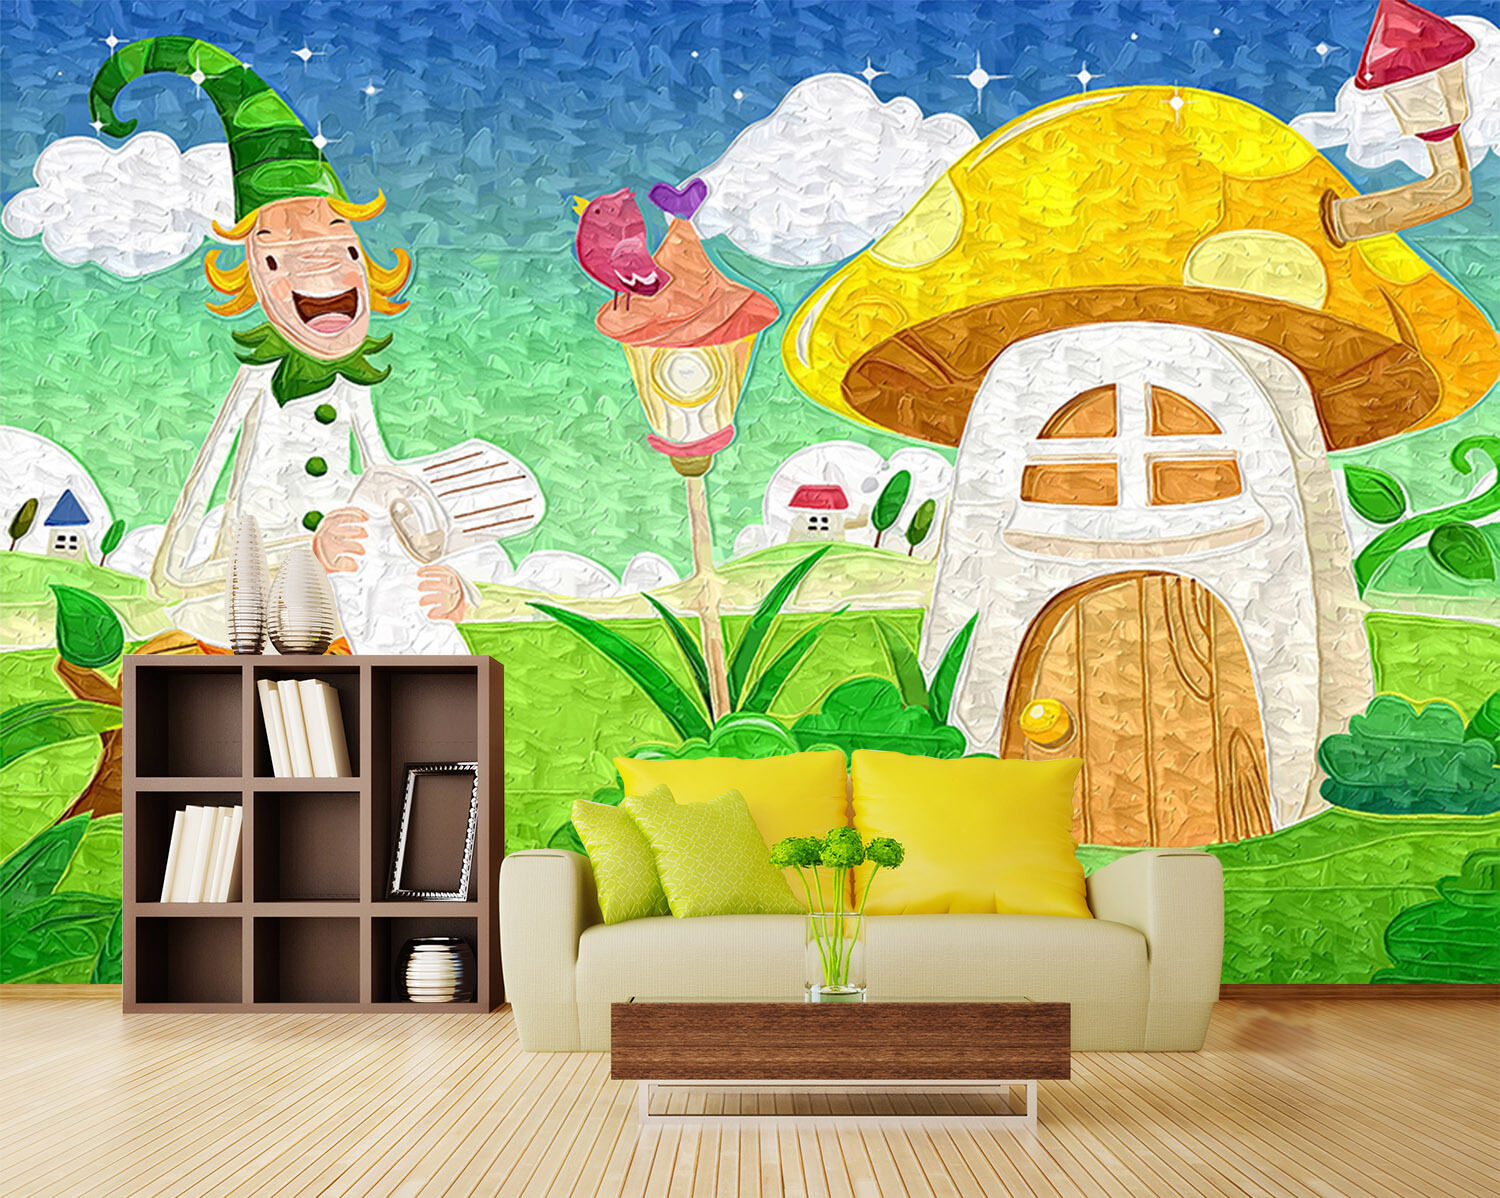 3D Pretty House And Man 713 Wallpaper Decal Dercor Home Kids Nursery Mural  Home